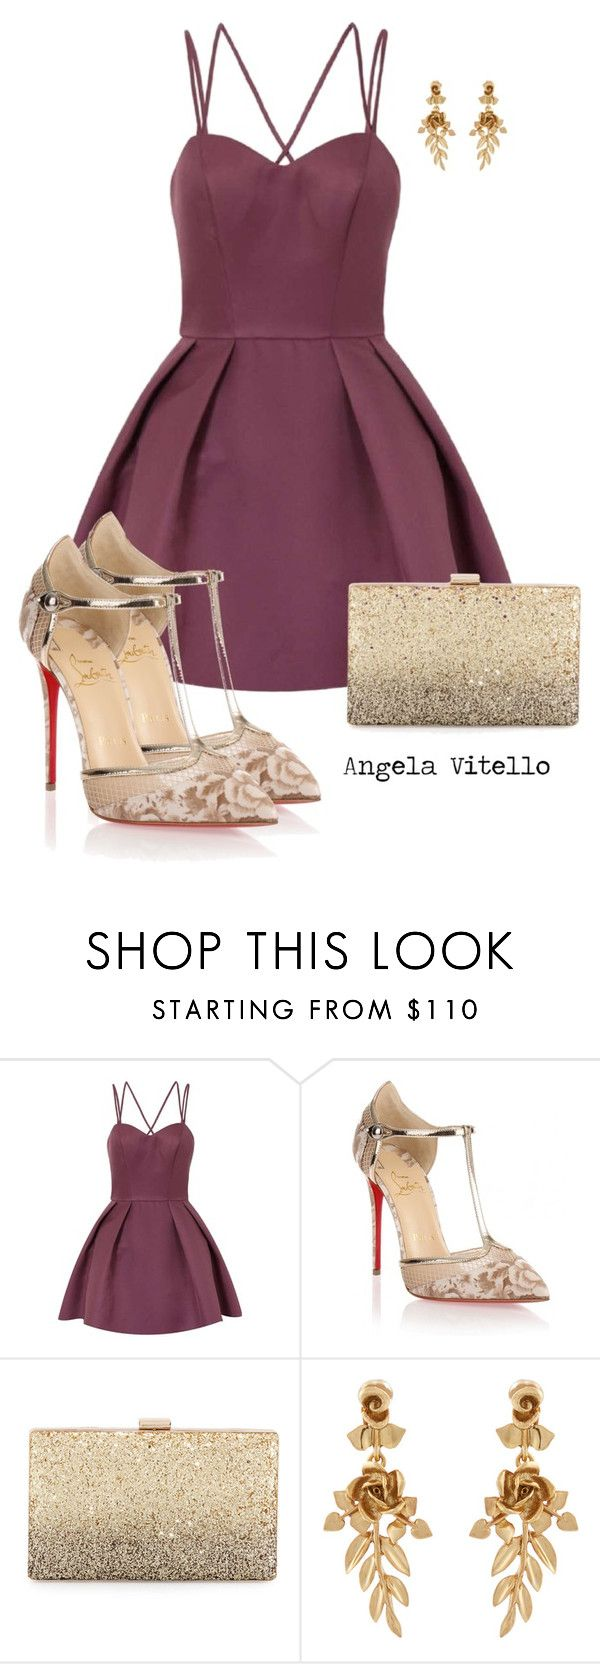 """Untitled #903"" by angela-vitello on Polyvore featuring Chi Chi, Christian Louboutin, Neiman Marcus and Oscar de la Renta"